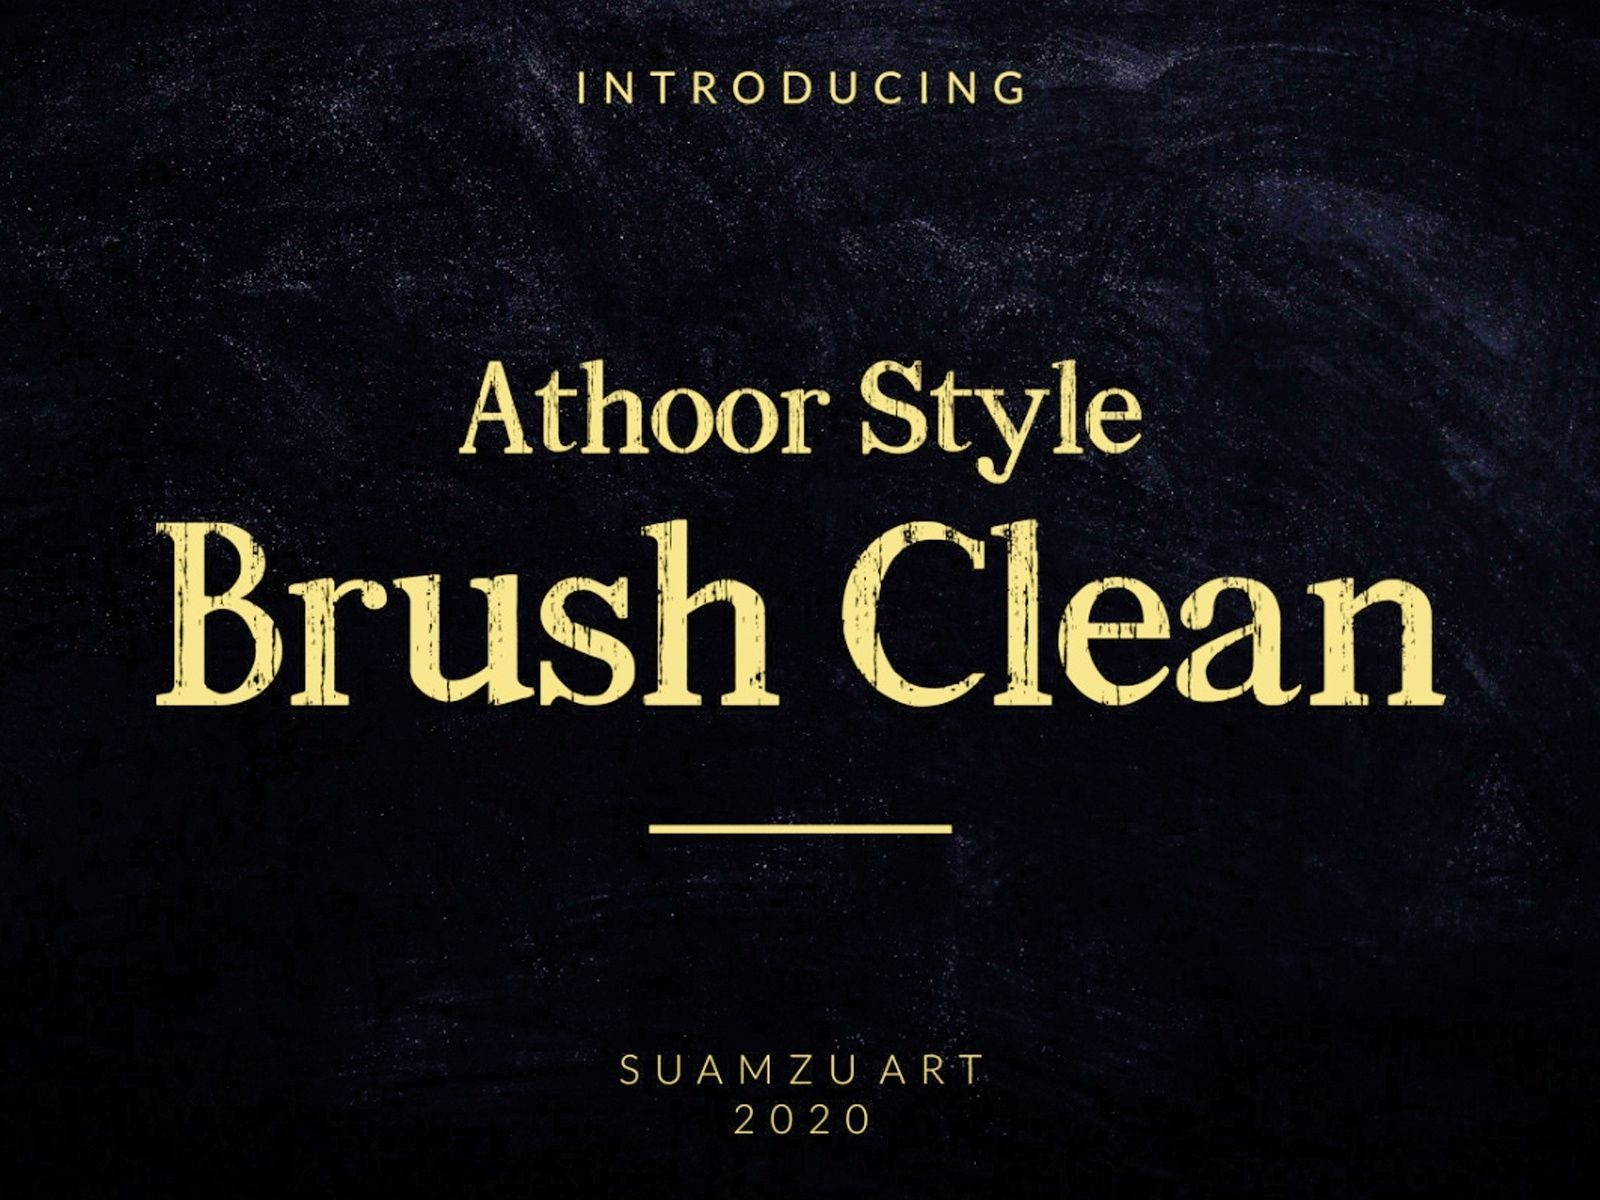 Athoor Style Brush Clean Font-1 (1)